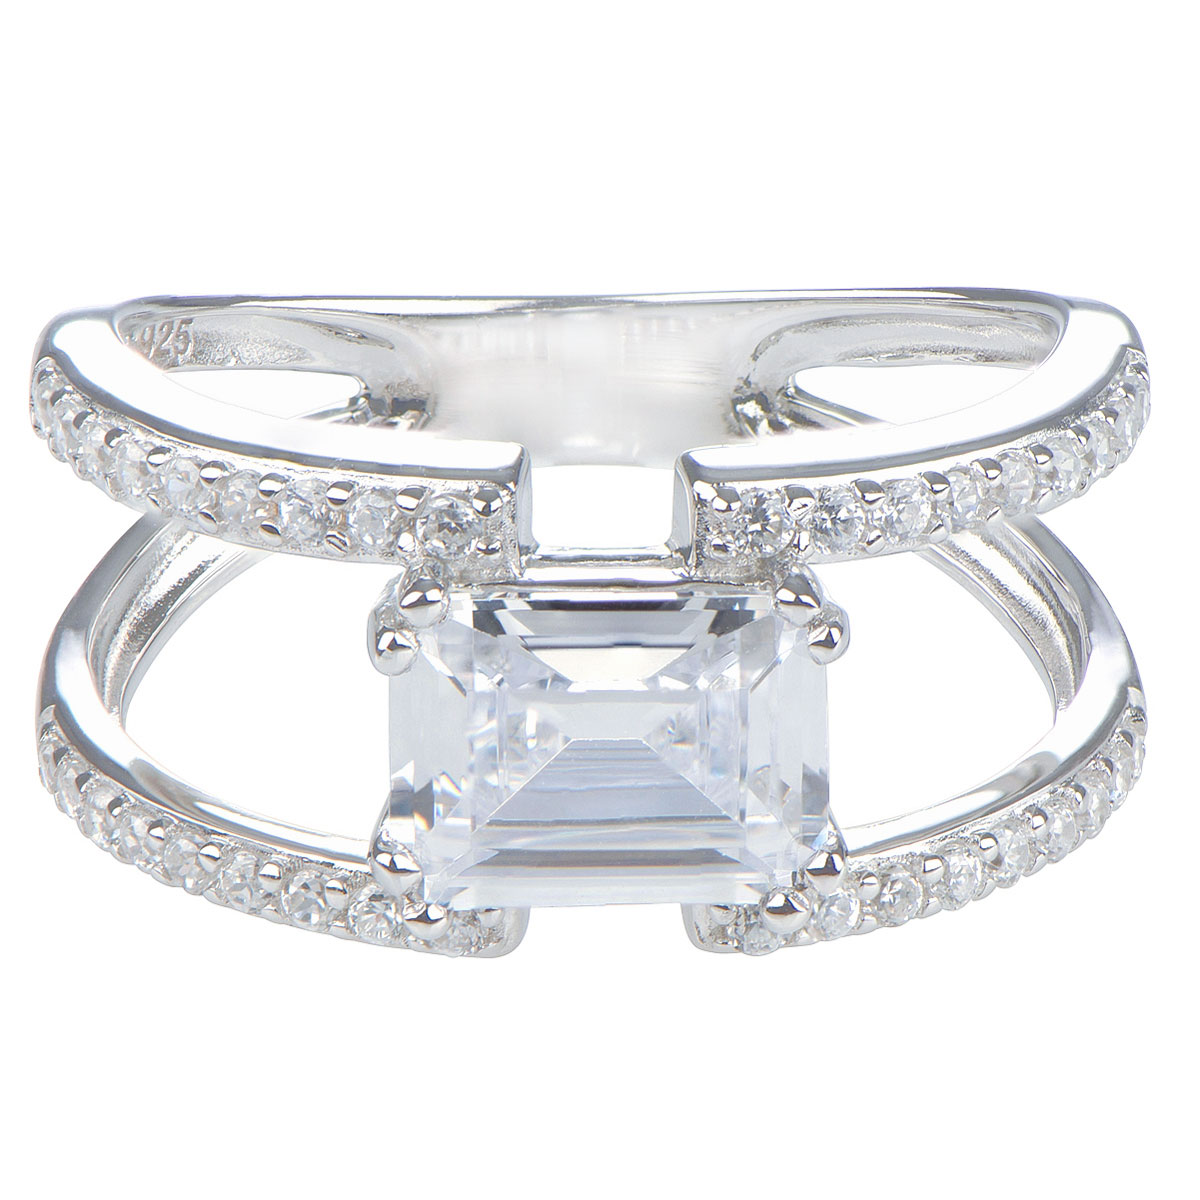 Brie s Double Row Emerald Cut Engagement Ring